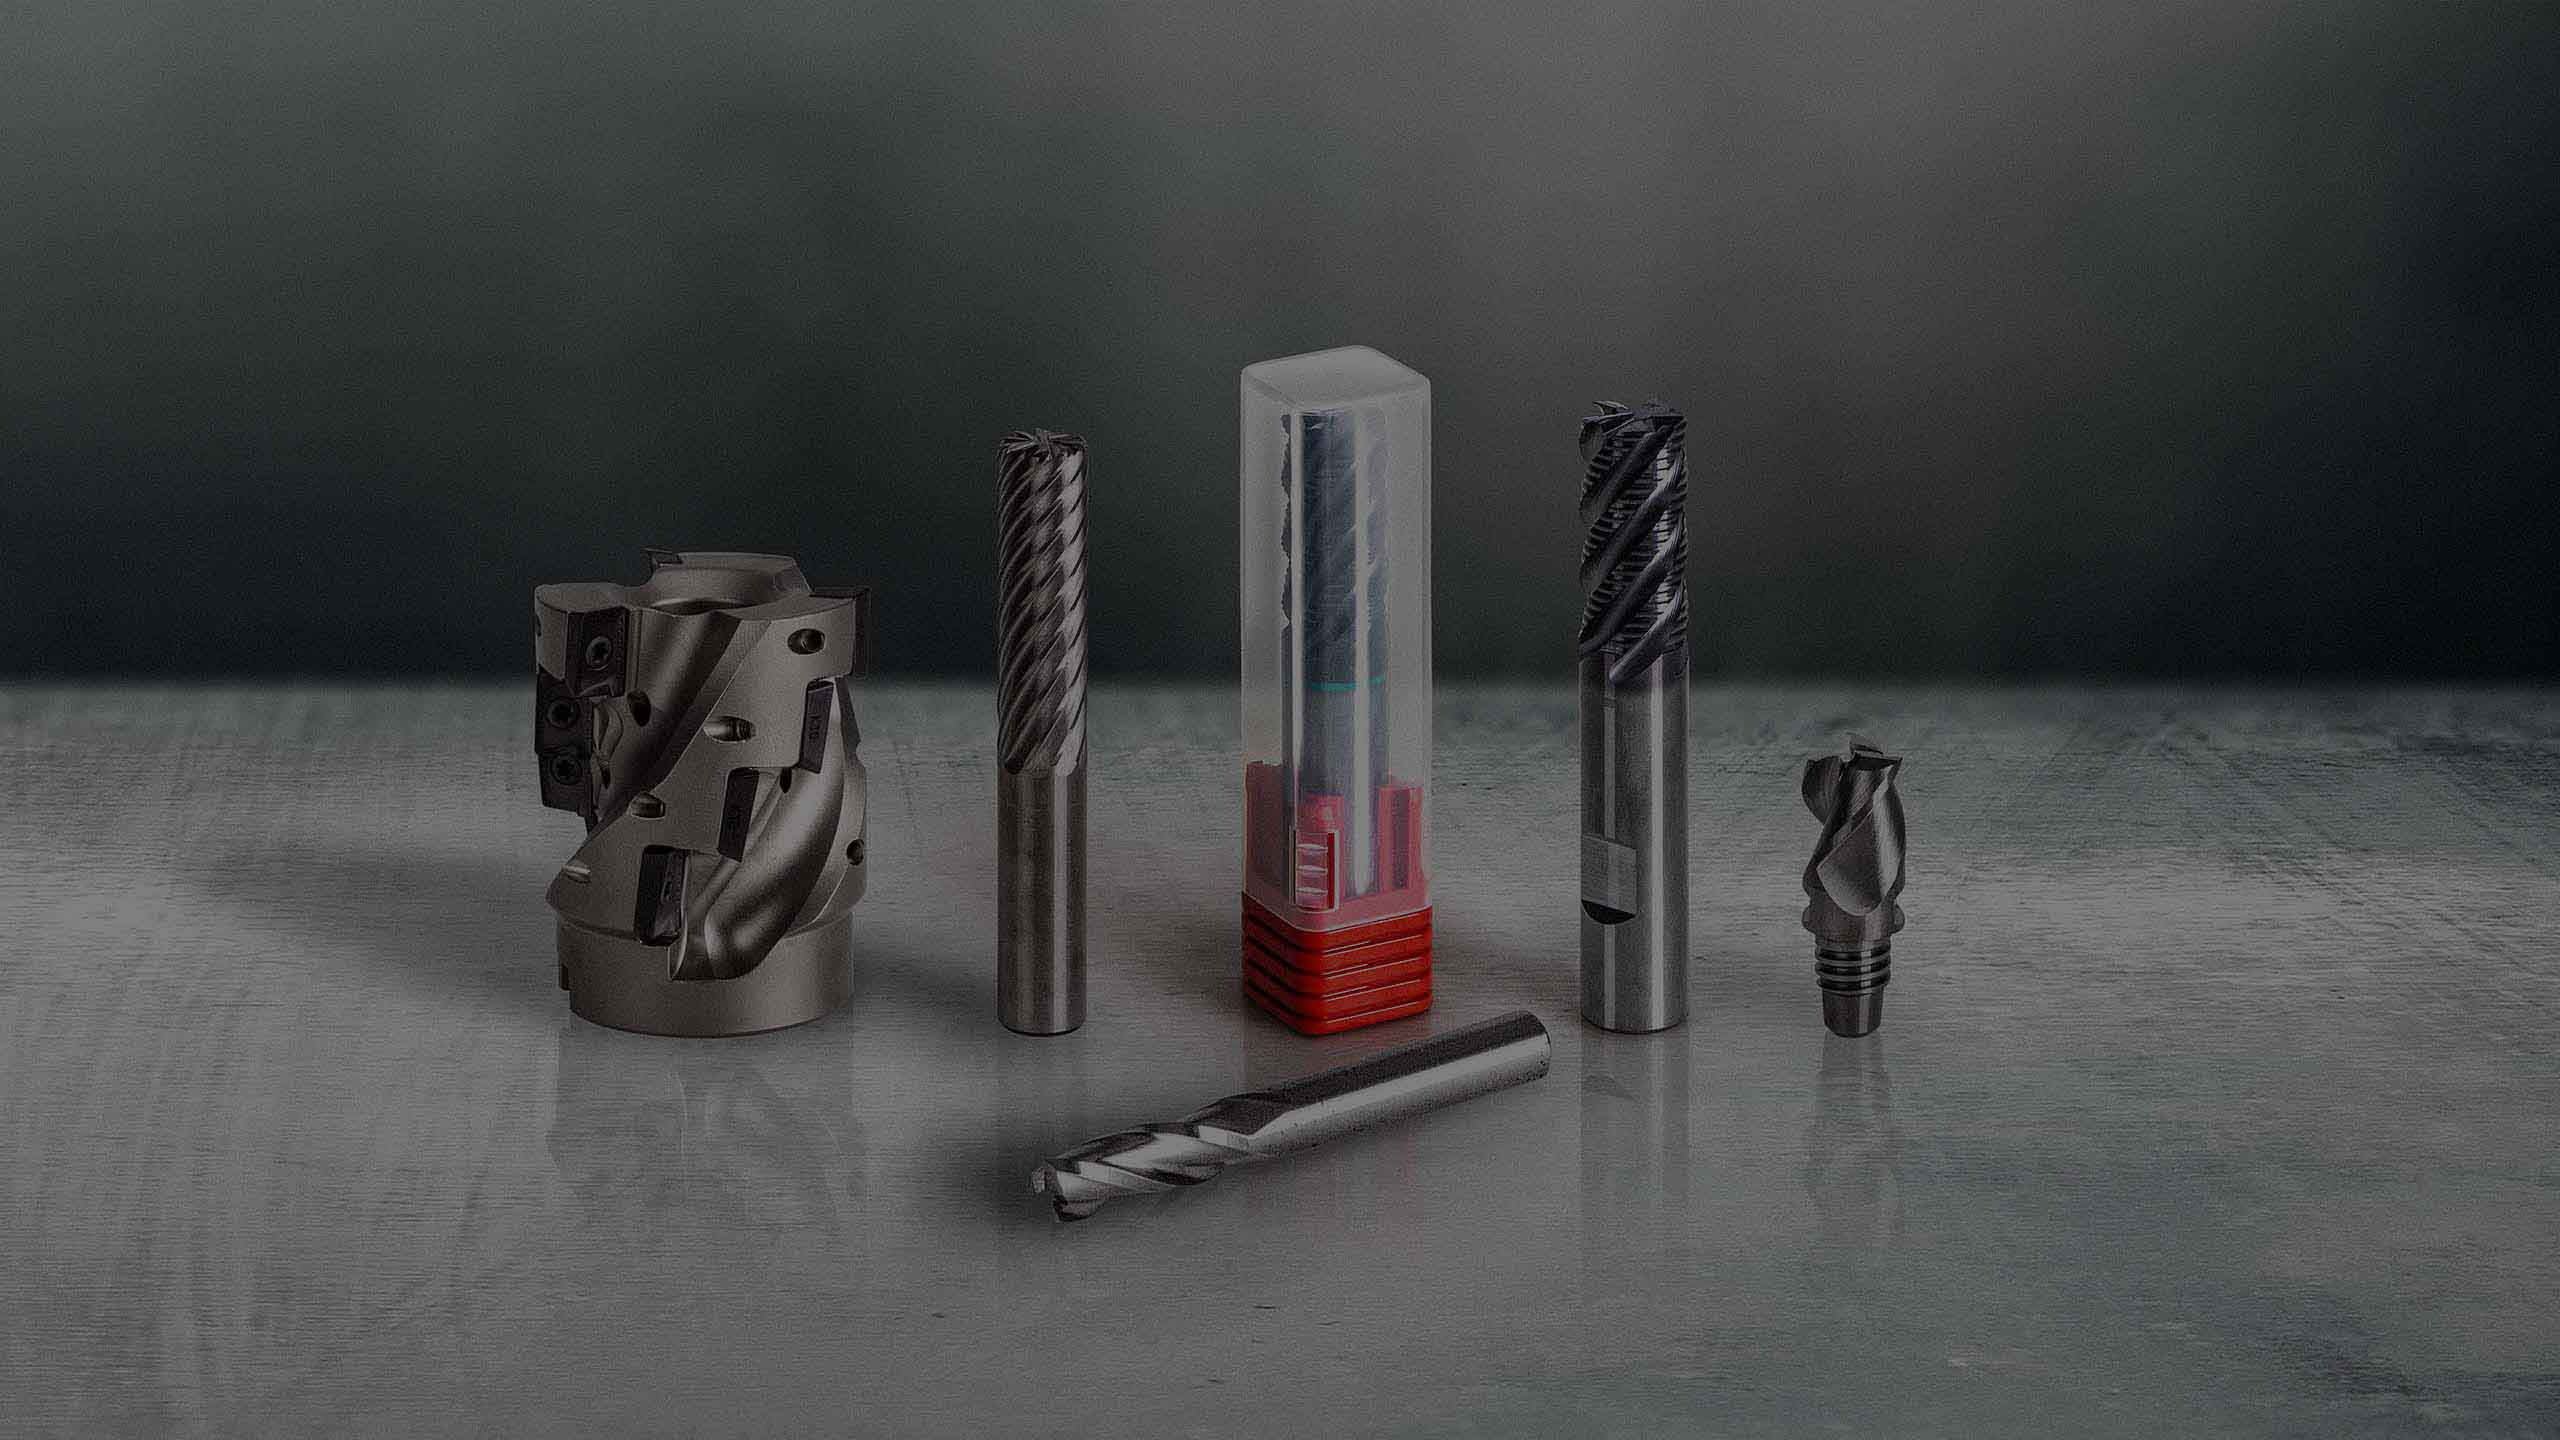 Plastic packaging solutions for milling tools.